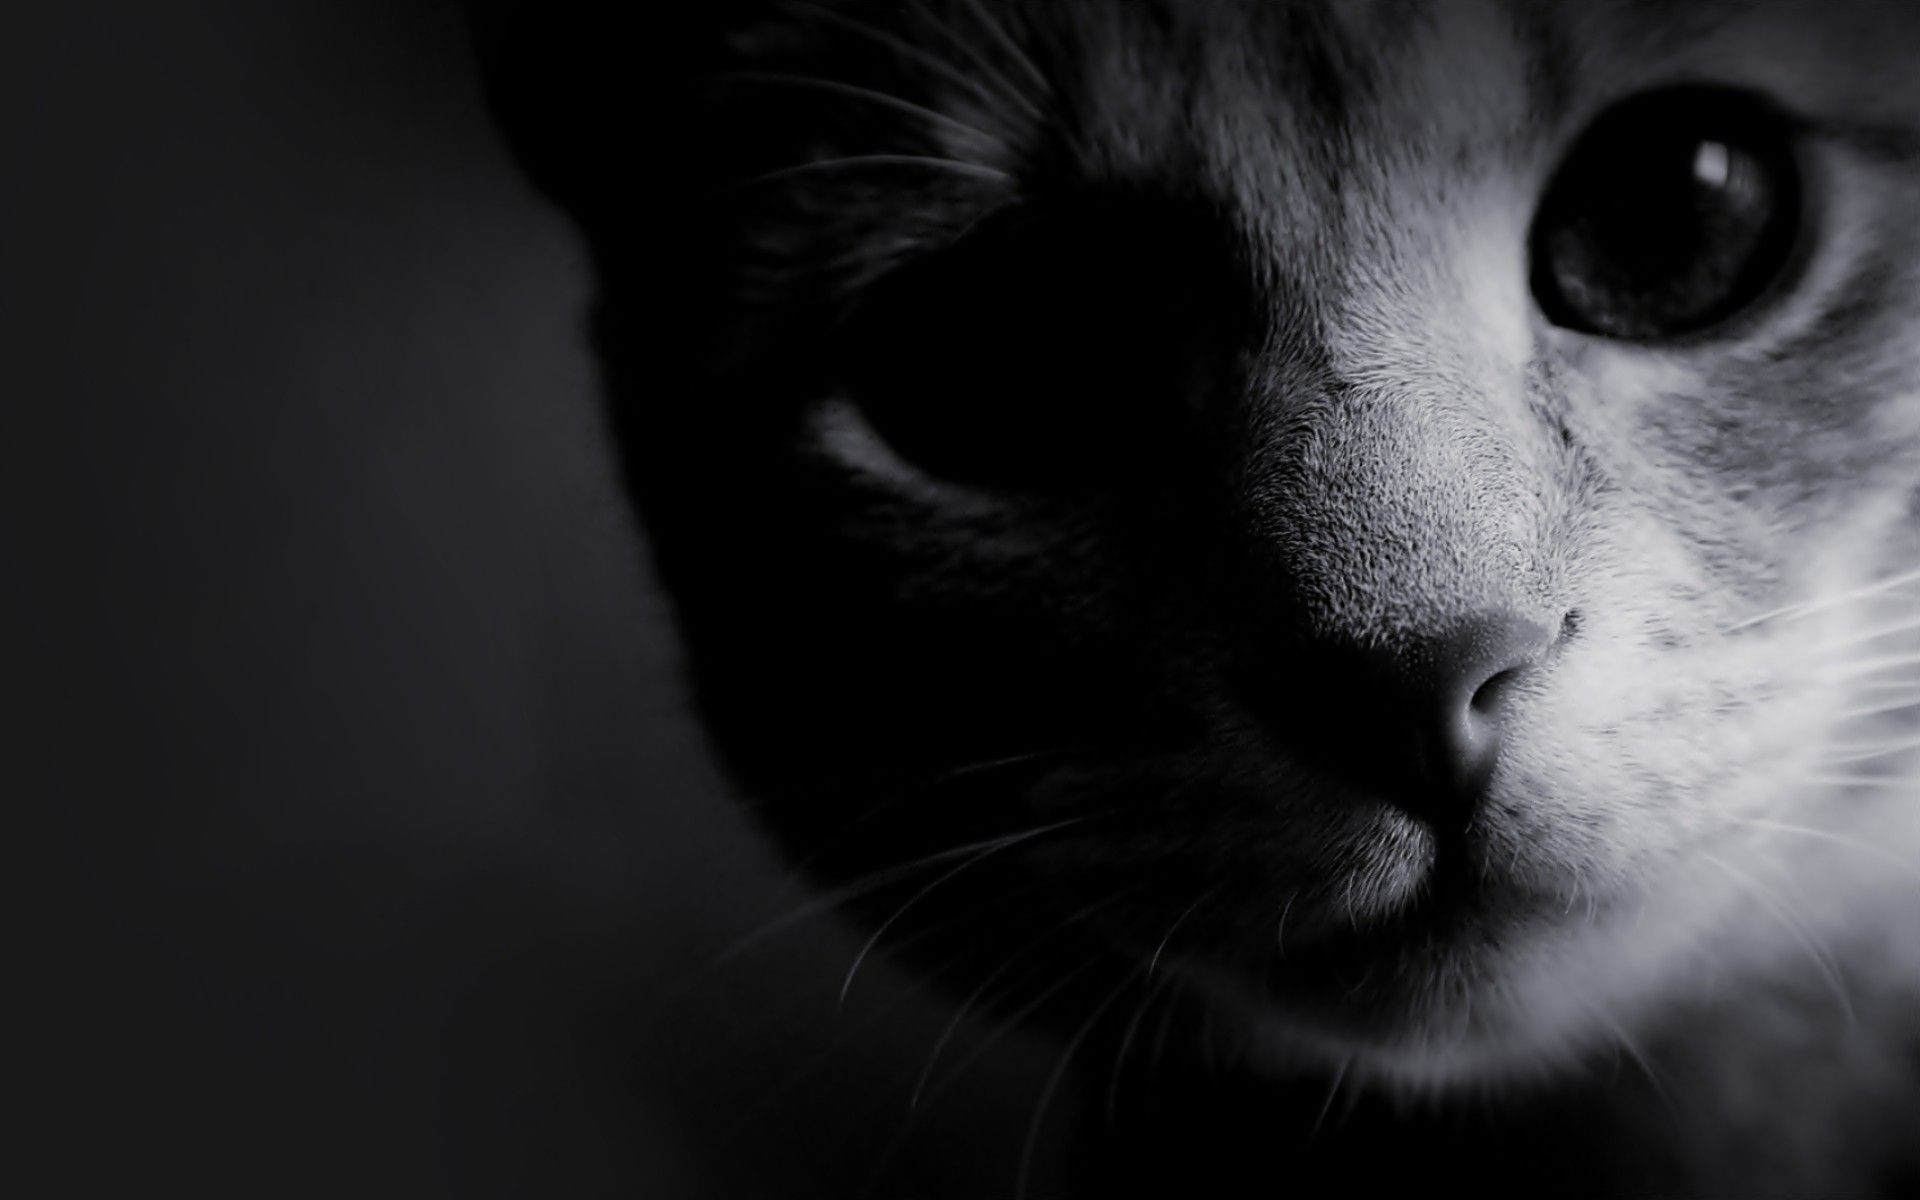 Black And White Cat Wallpapers Top Free Black And White Cat Backgrounds Wallpaperaccess